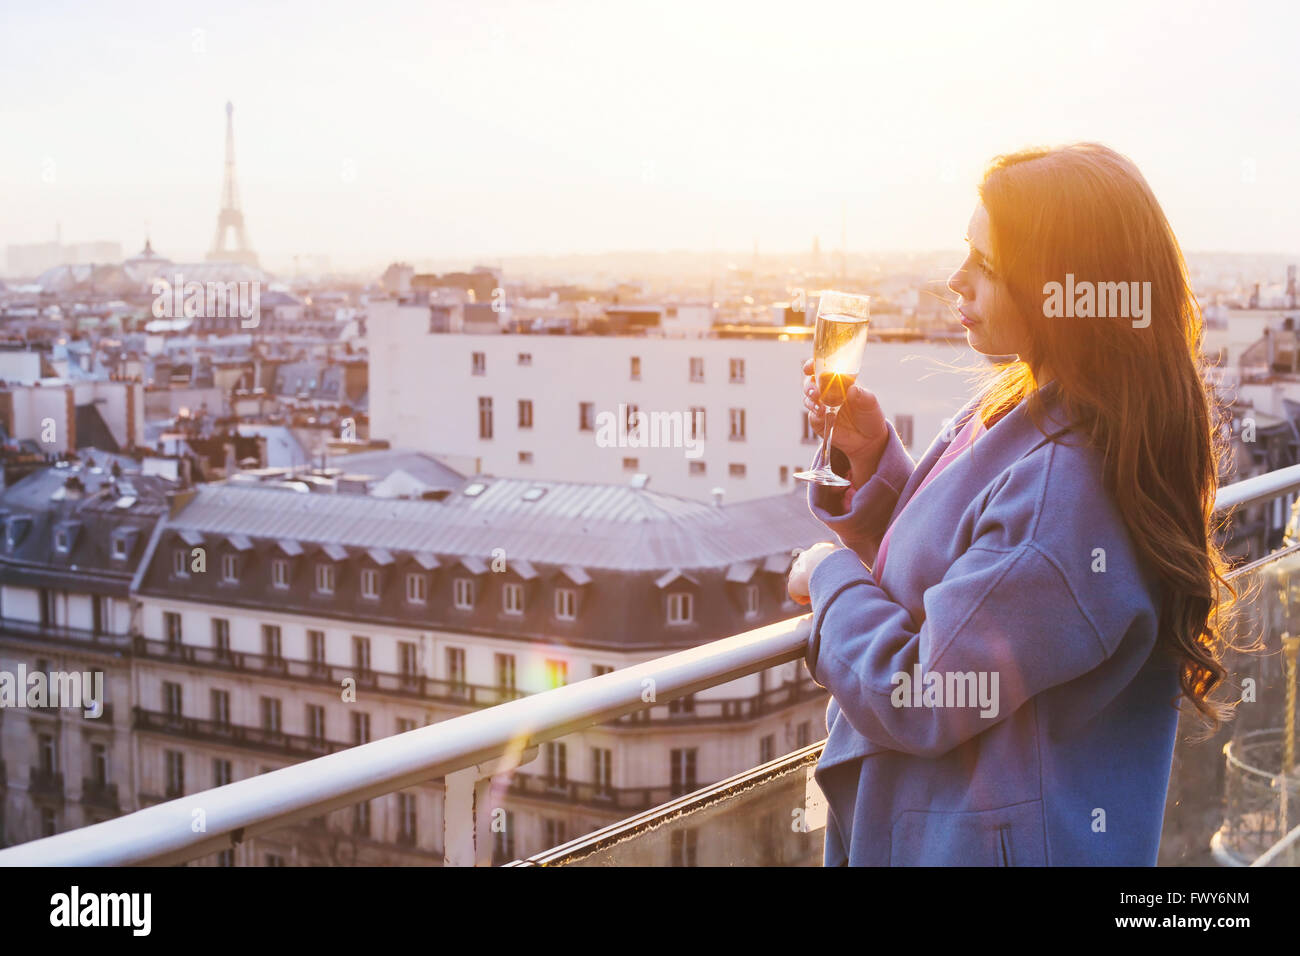 woman enjoying panoramic view of Paris and Eiffel tower at sunset, holding glass of wine or champagne in rooftop - Stock Image